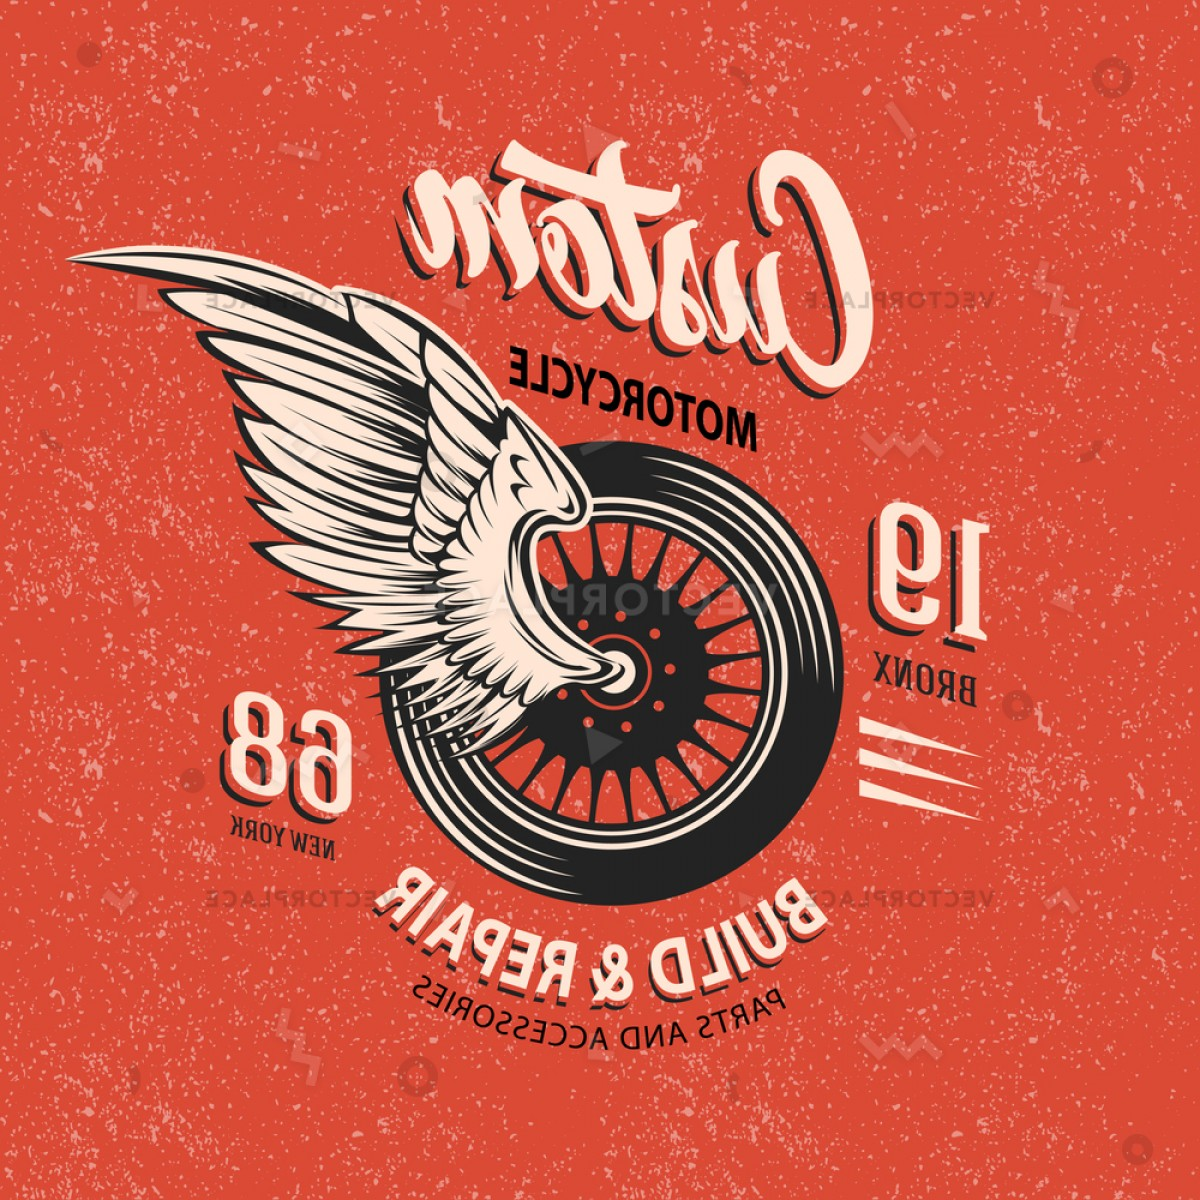 Motorcycle Club Vector: Motorcycle Club Emblem Winged Wheel White Vector Illustration